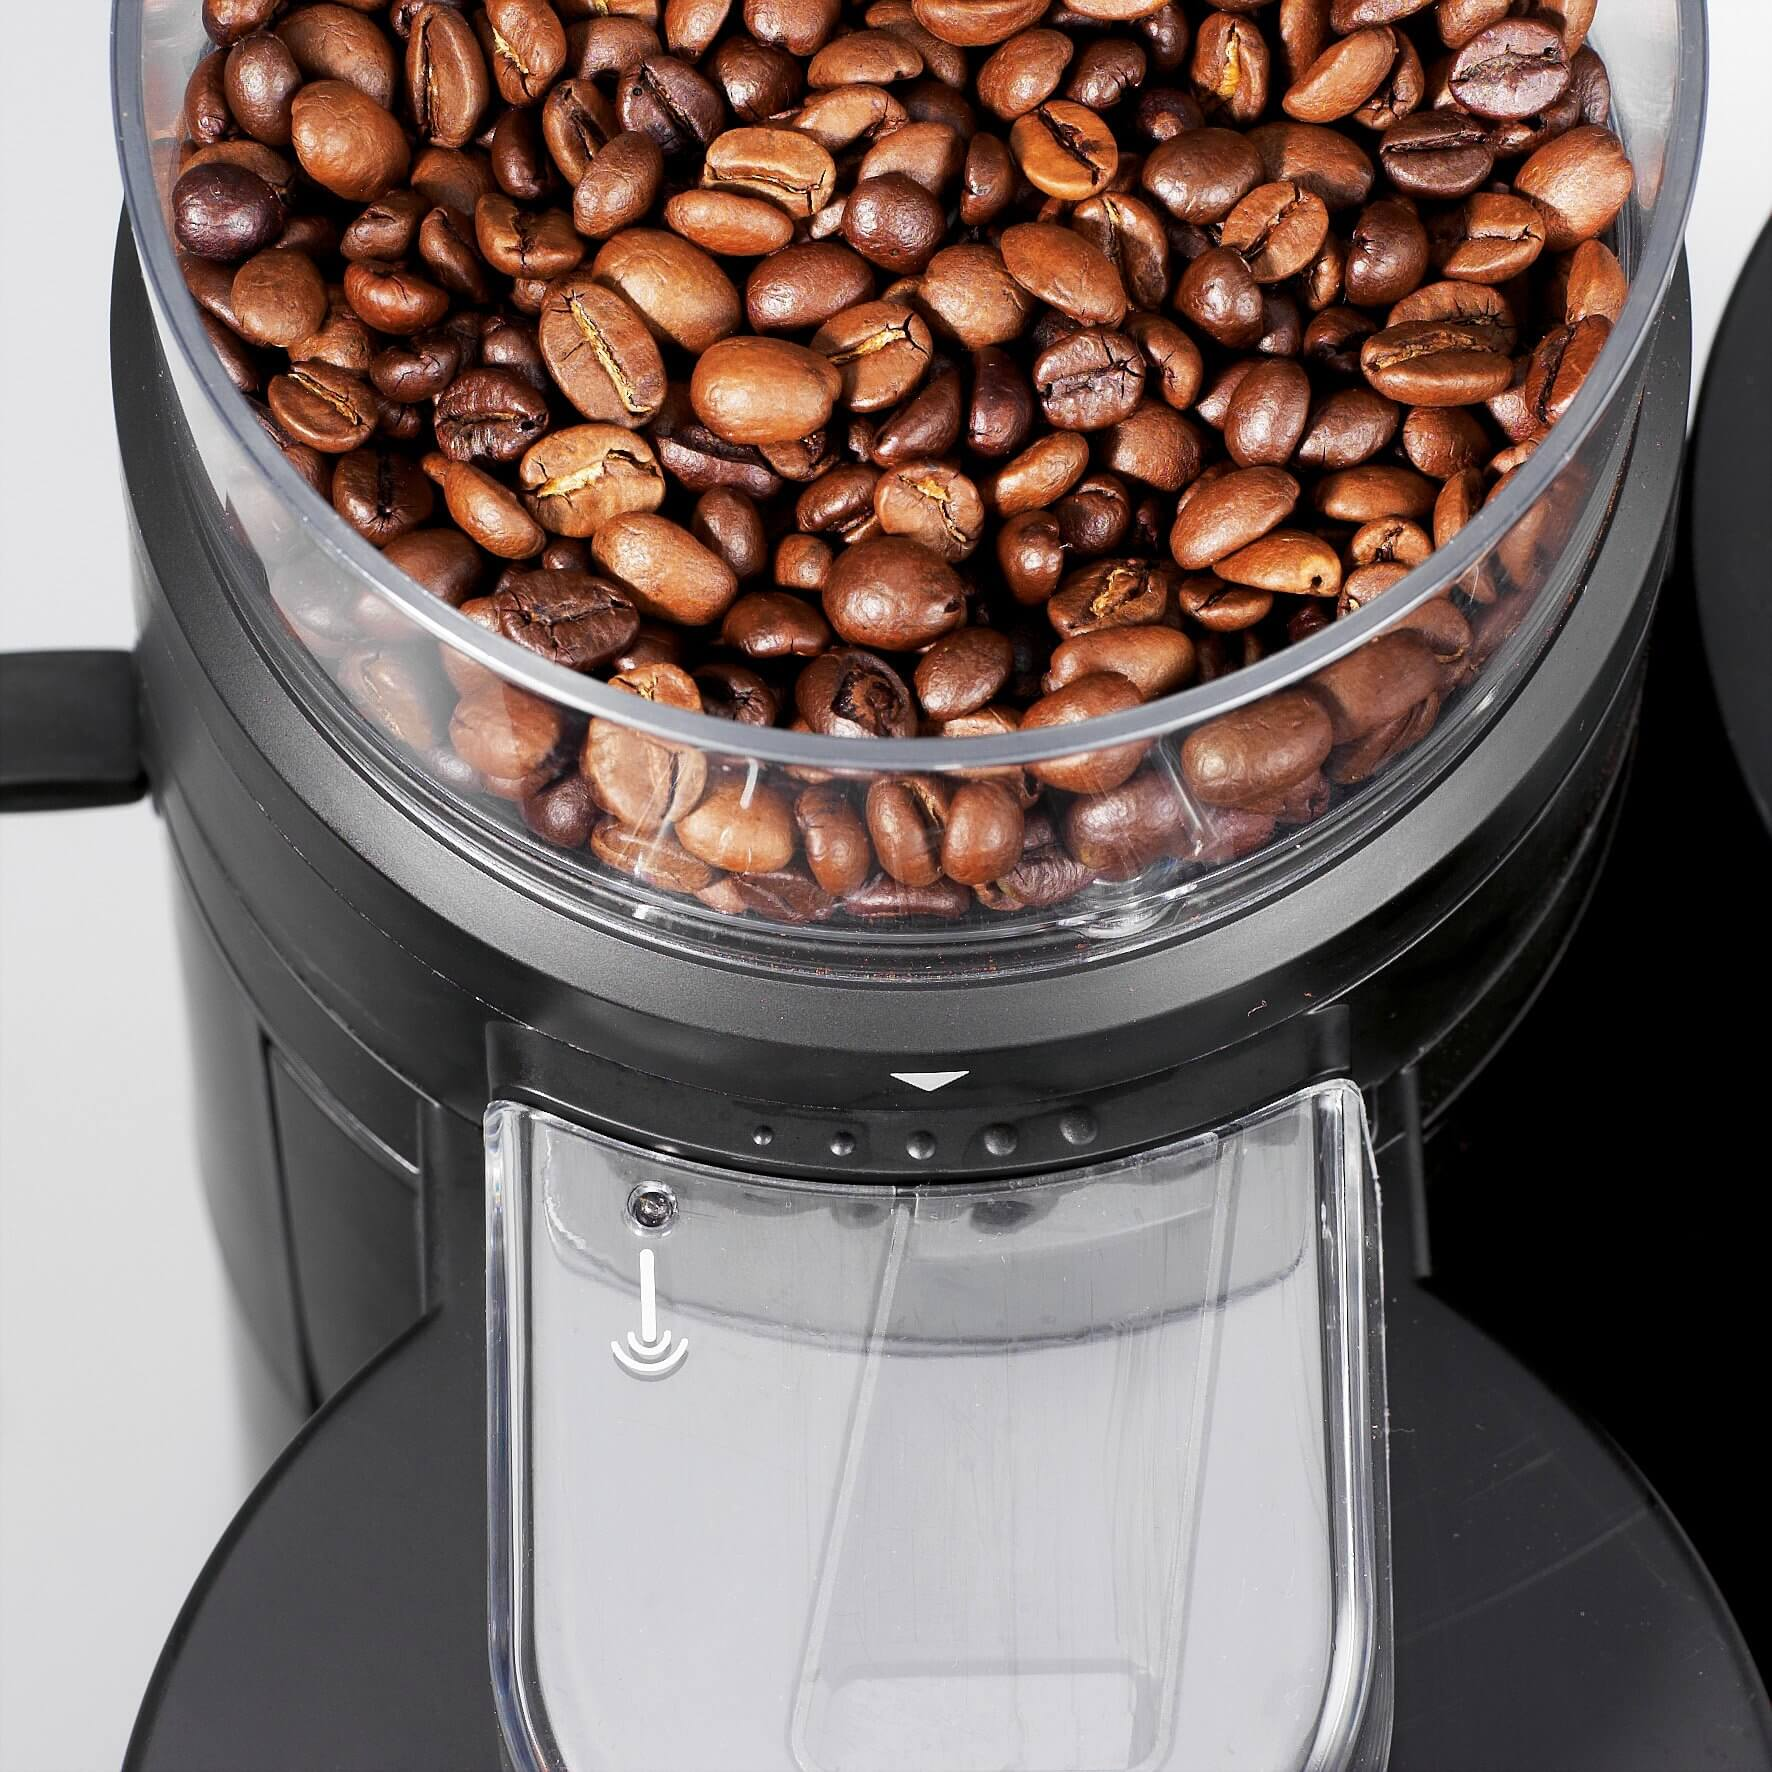 Krups 625-70 Grinder & Brewer Coffee Maker with Programmable Timer, coffee machines with grinders, types of coffee maker